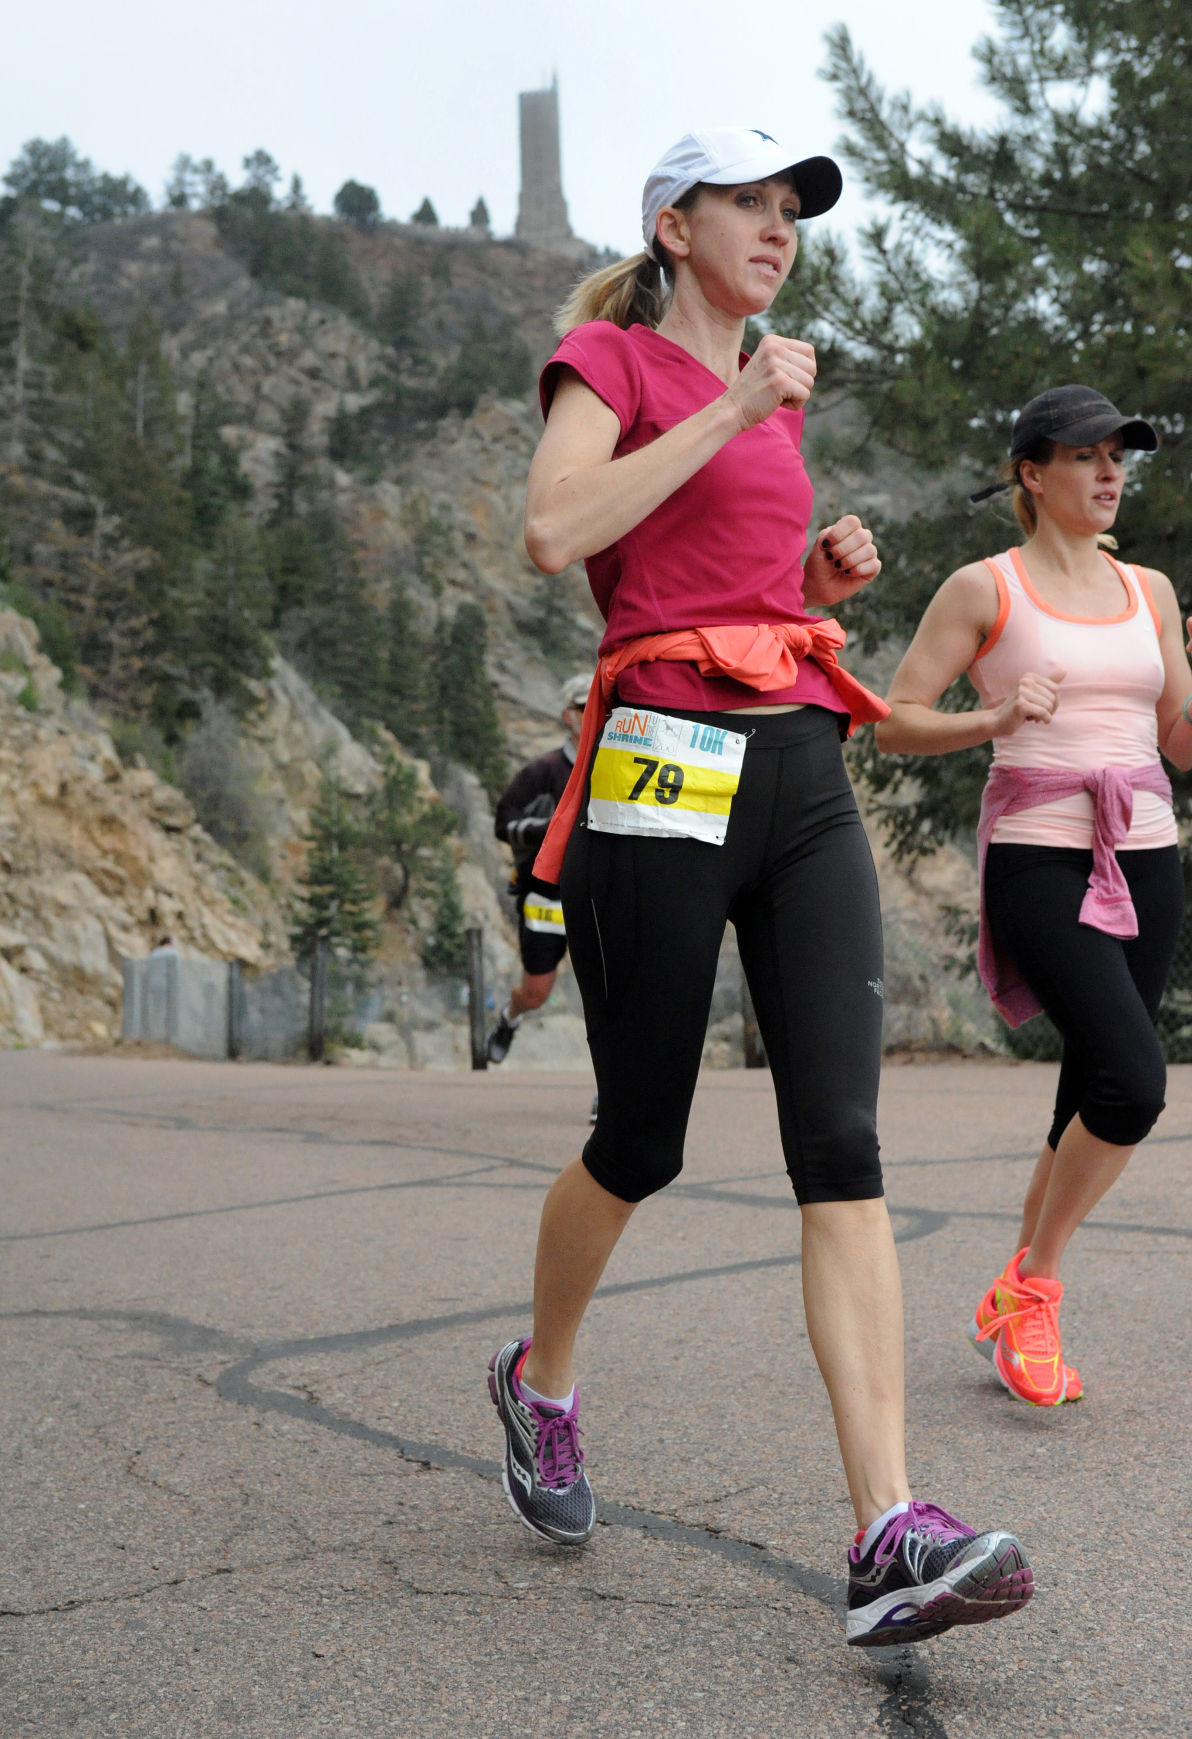 Run to the Shrine 5k/10k at Cheyenne Mountain Zoo Saturday May 17, 2014. Photo by Jeff Kearney